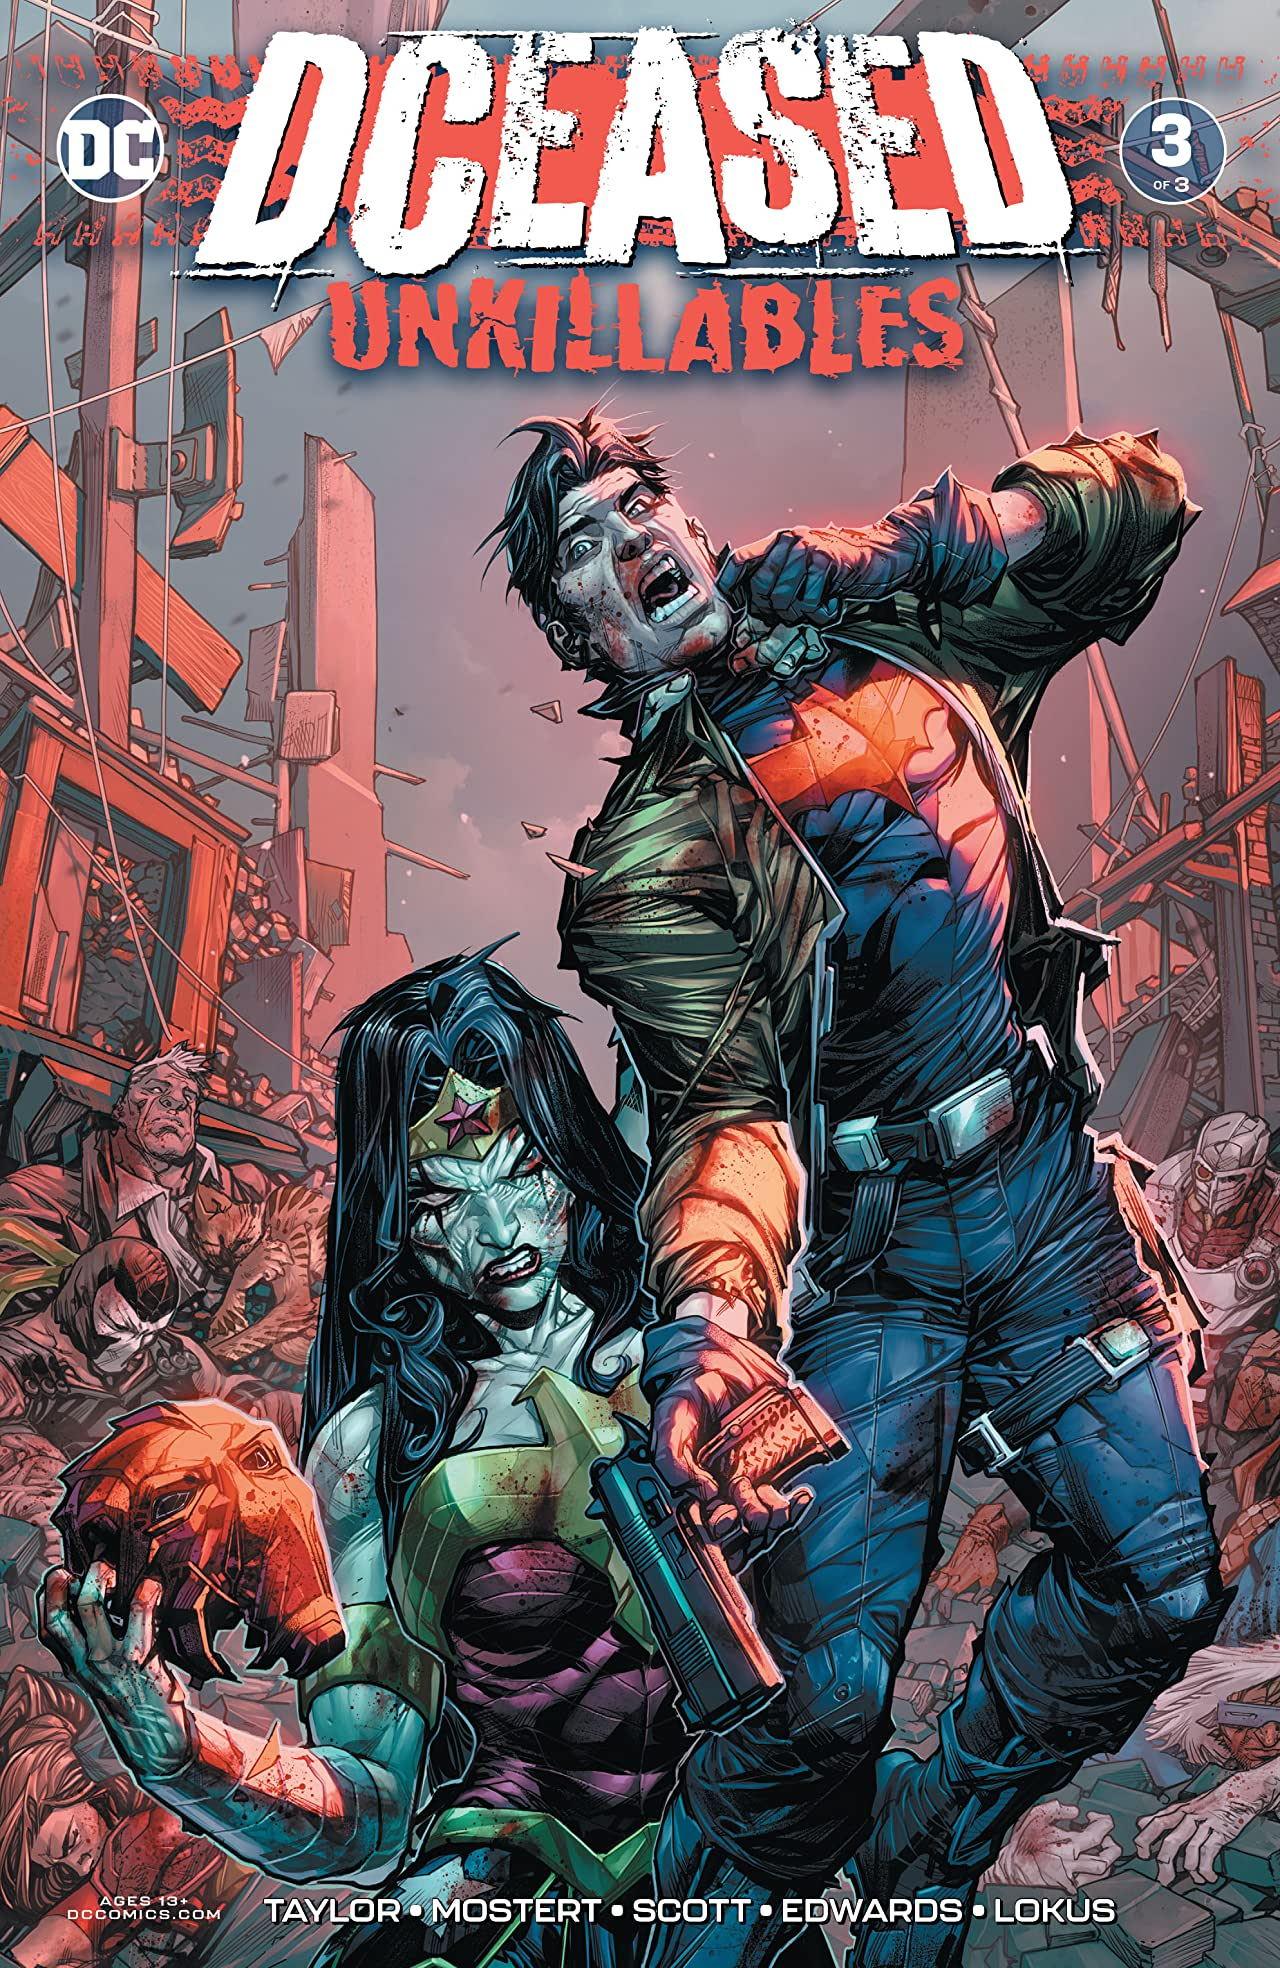 DCeased: Unkillables (2020-) #3